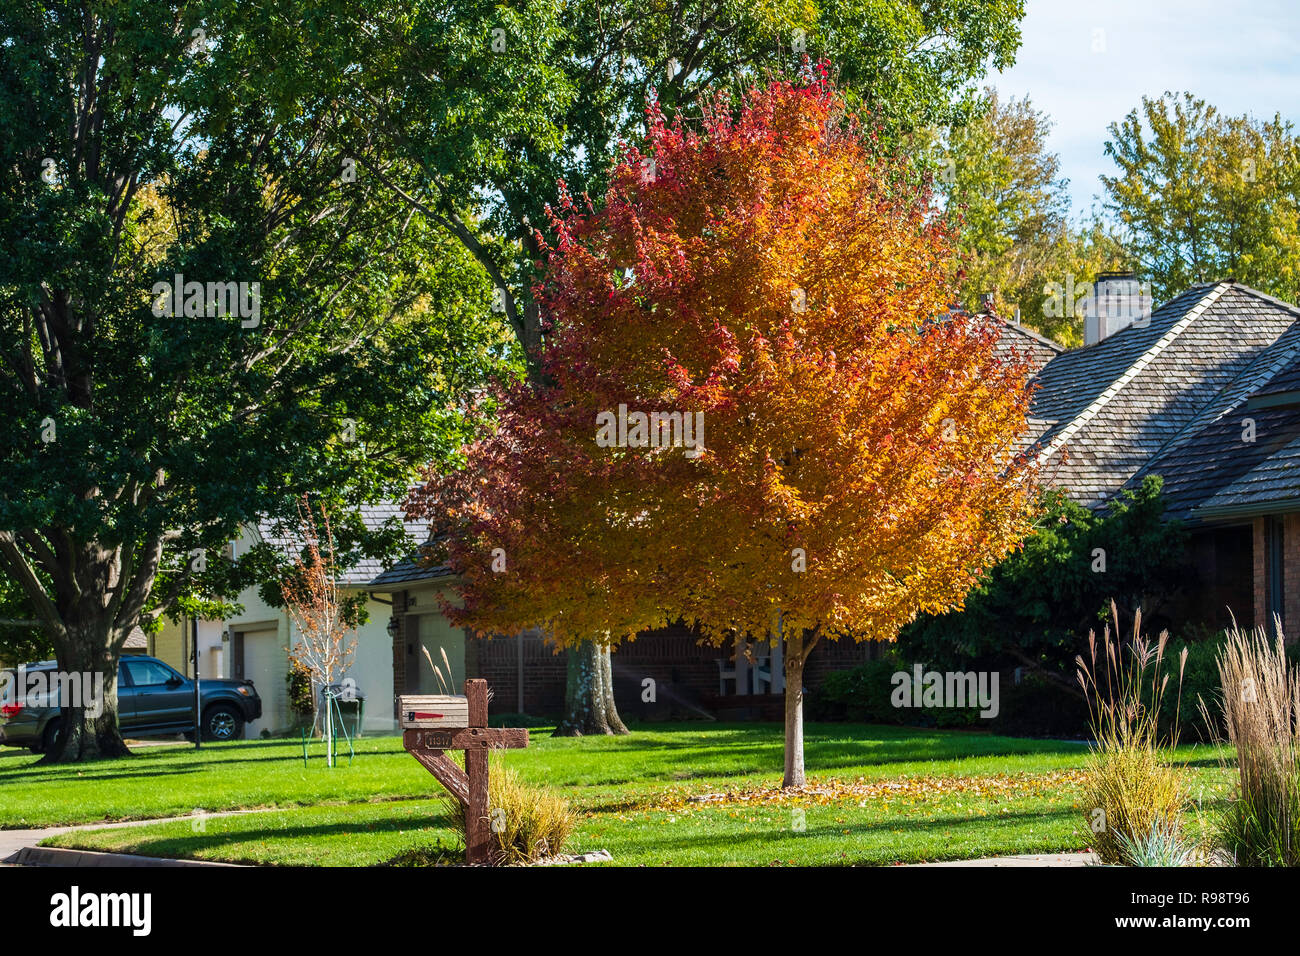 Ahorn October Glory Rot Ahorn Photos Rot Ahorn Images Alamy